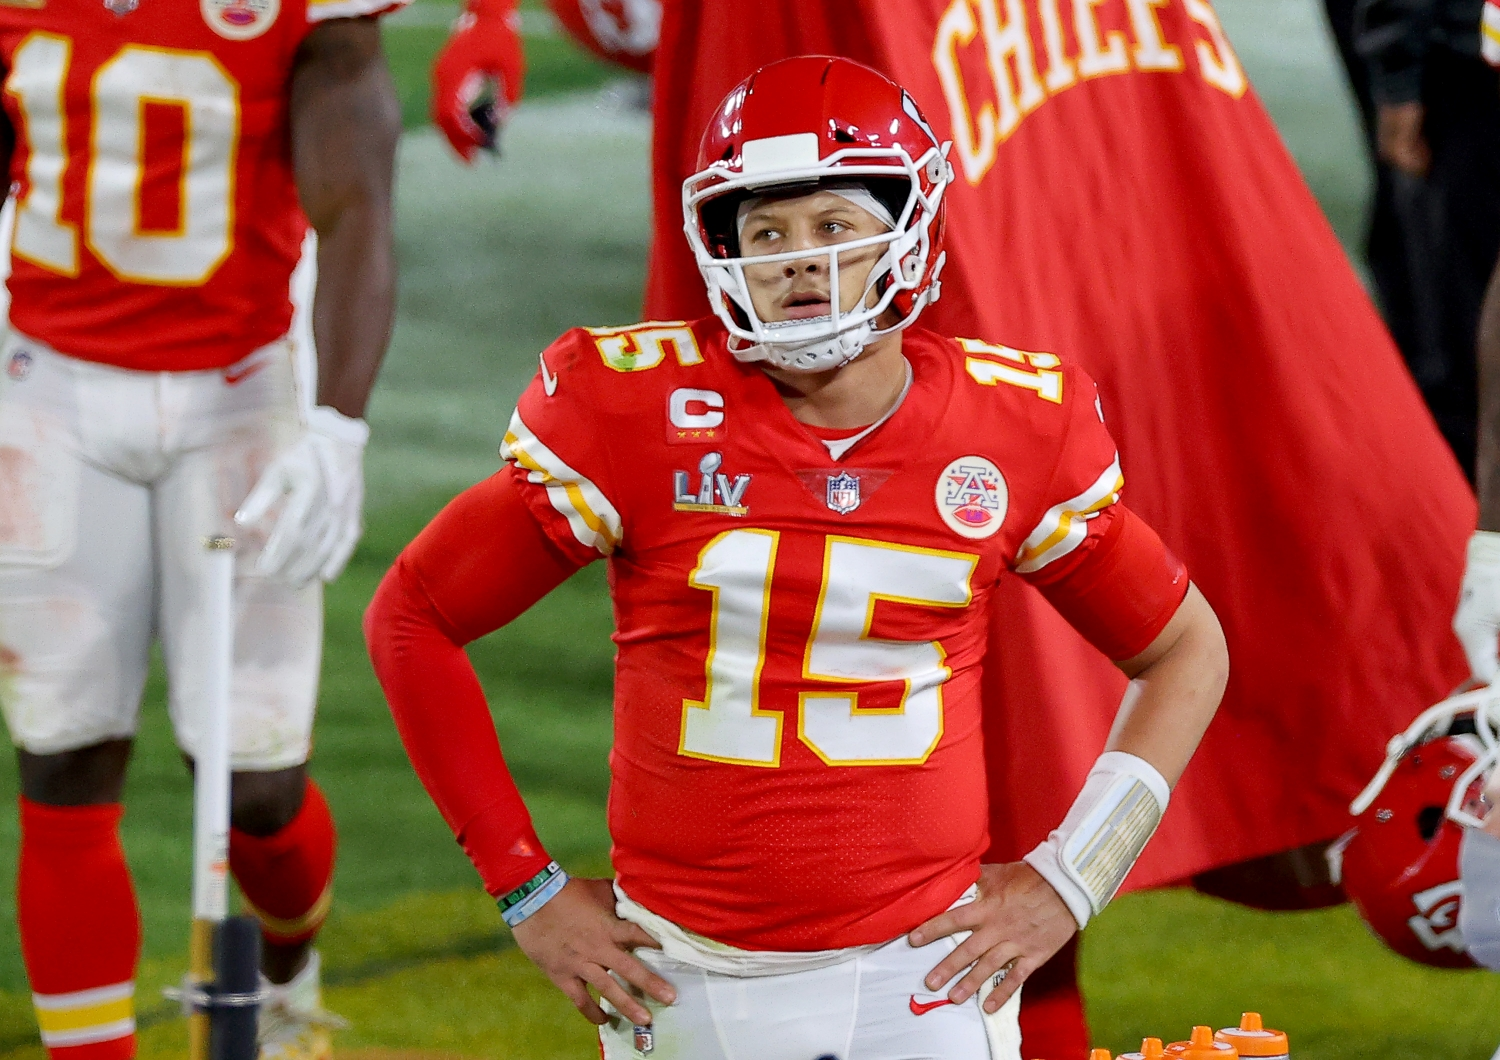 Patrick Mahomes Has Already Lost a Key Member of His New-Look Offensive Line to a Concerning Injury